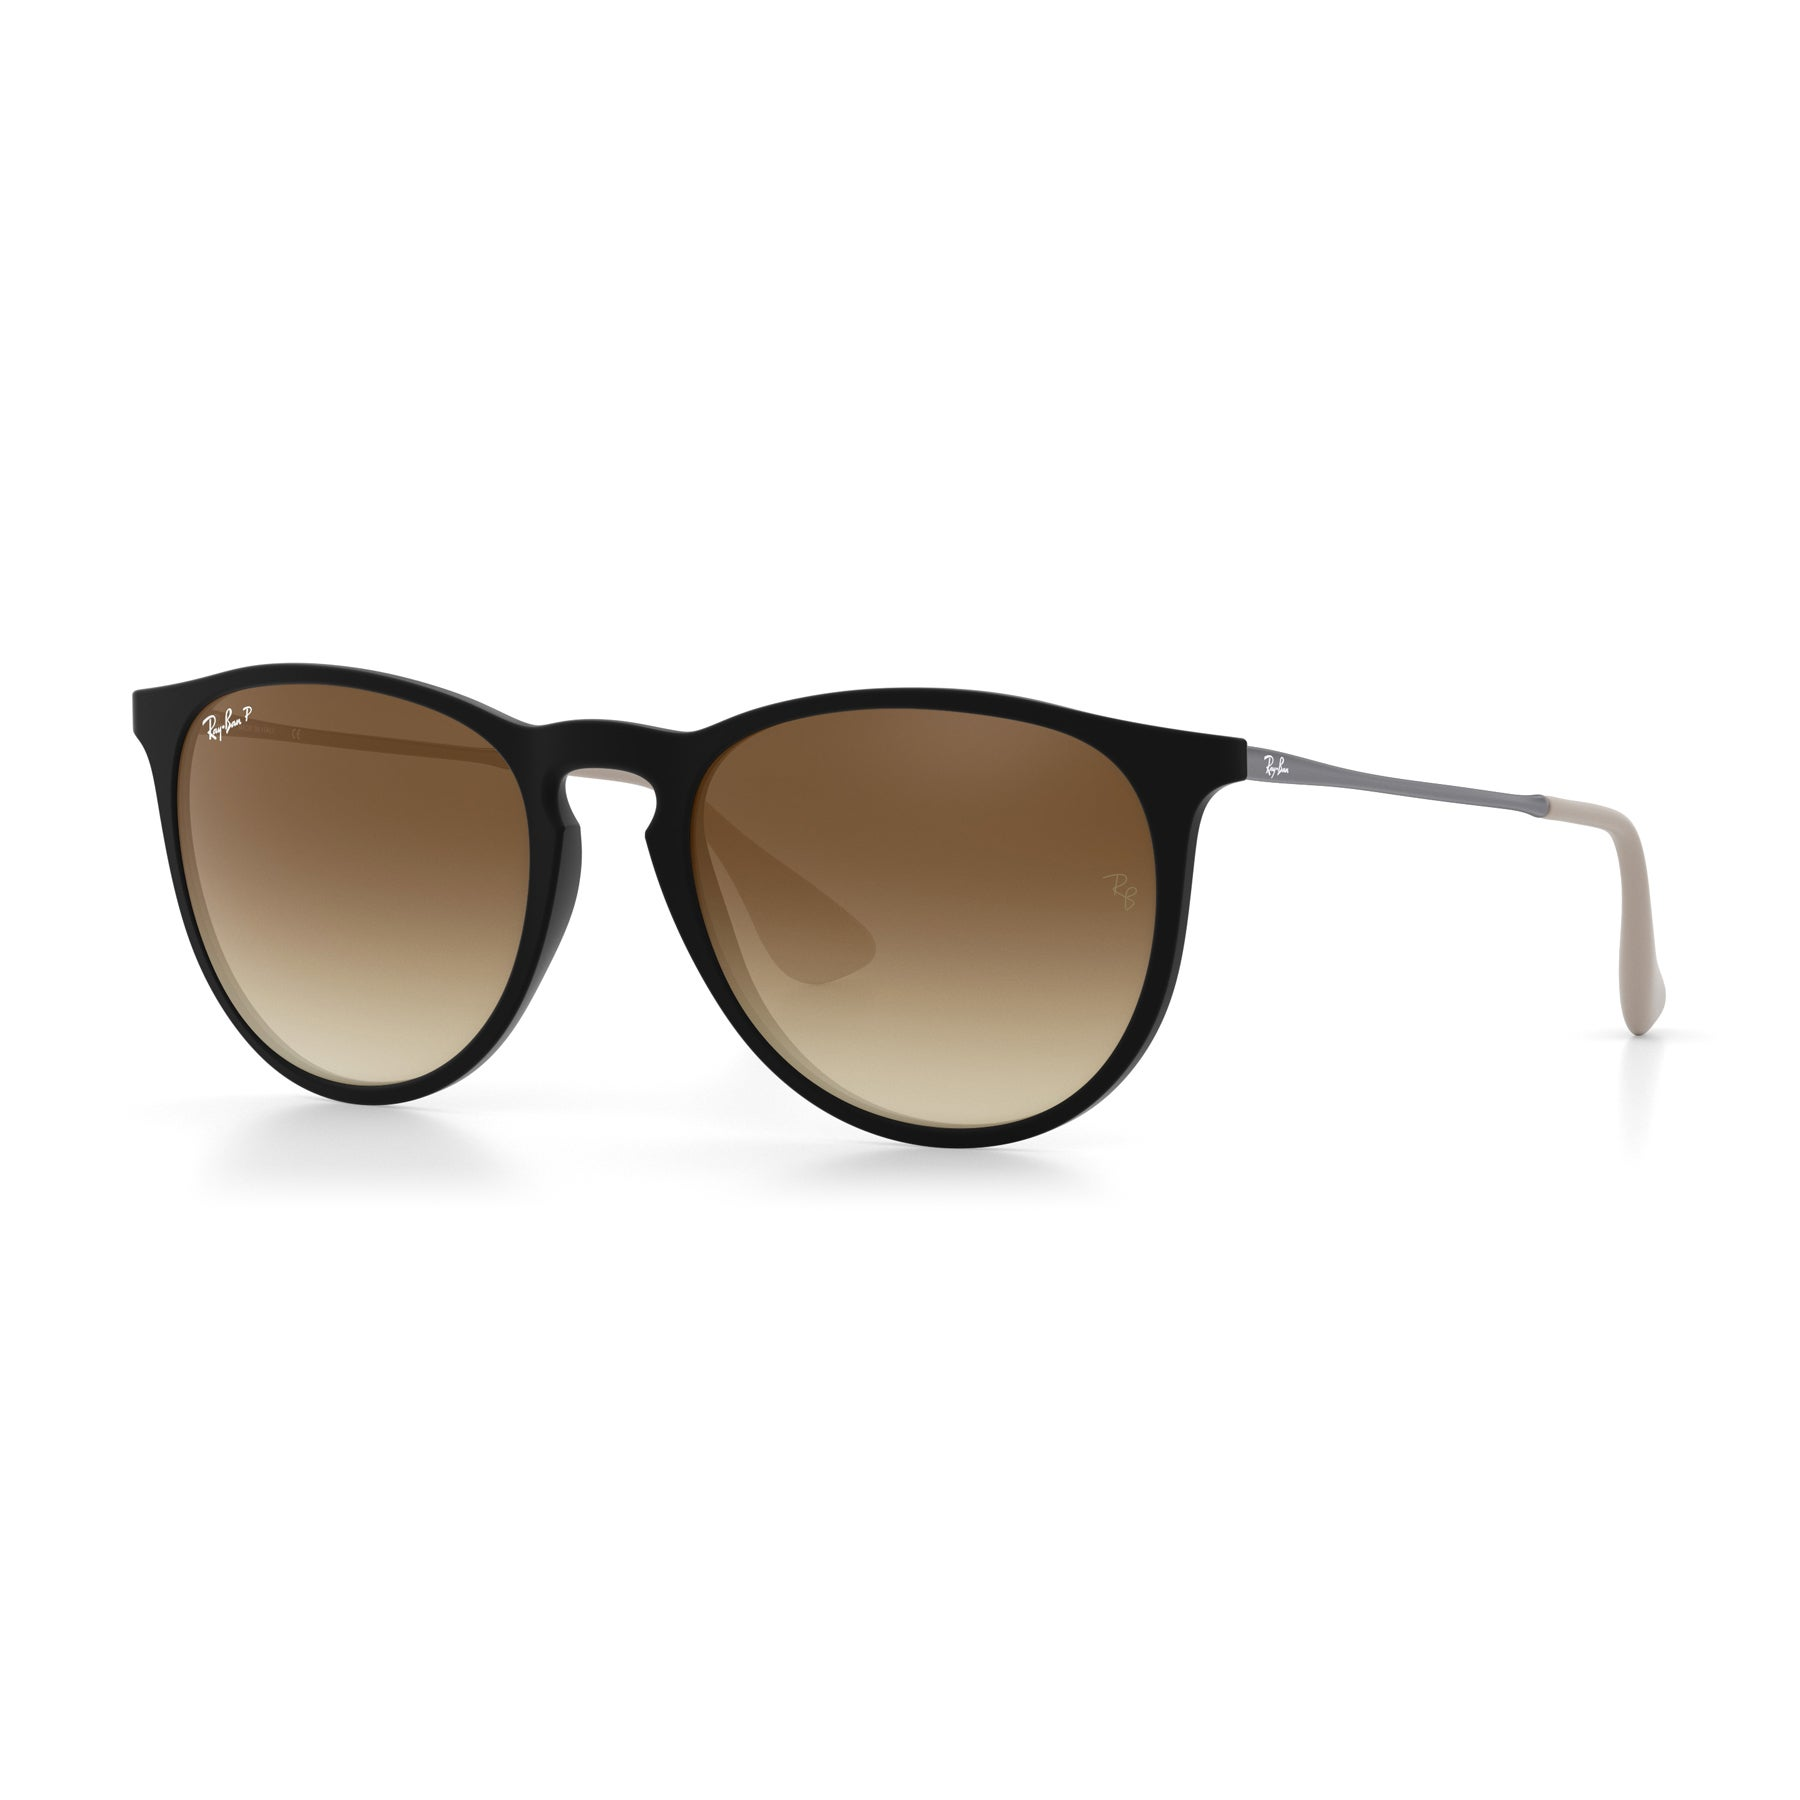 Ray-Ban Erika Womens Sunglasses - Polarised   Havana ~ Brown Gradient